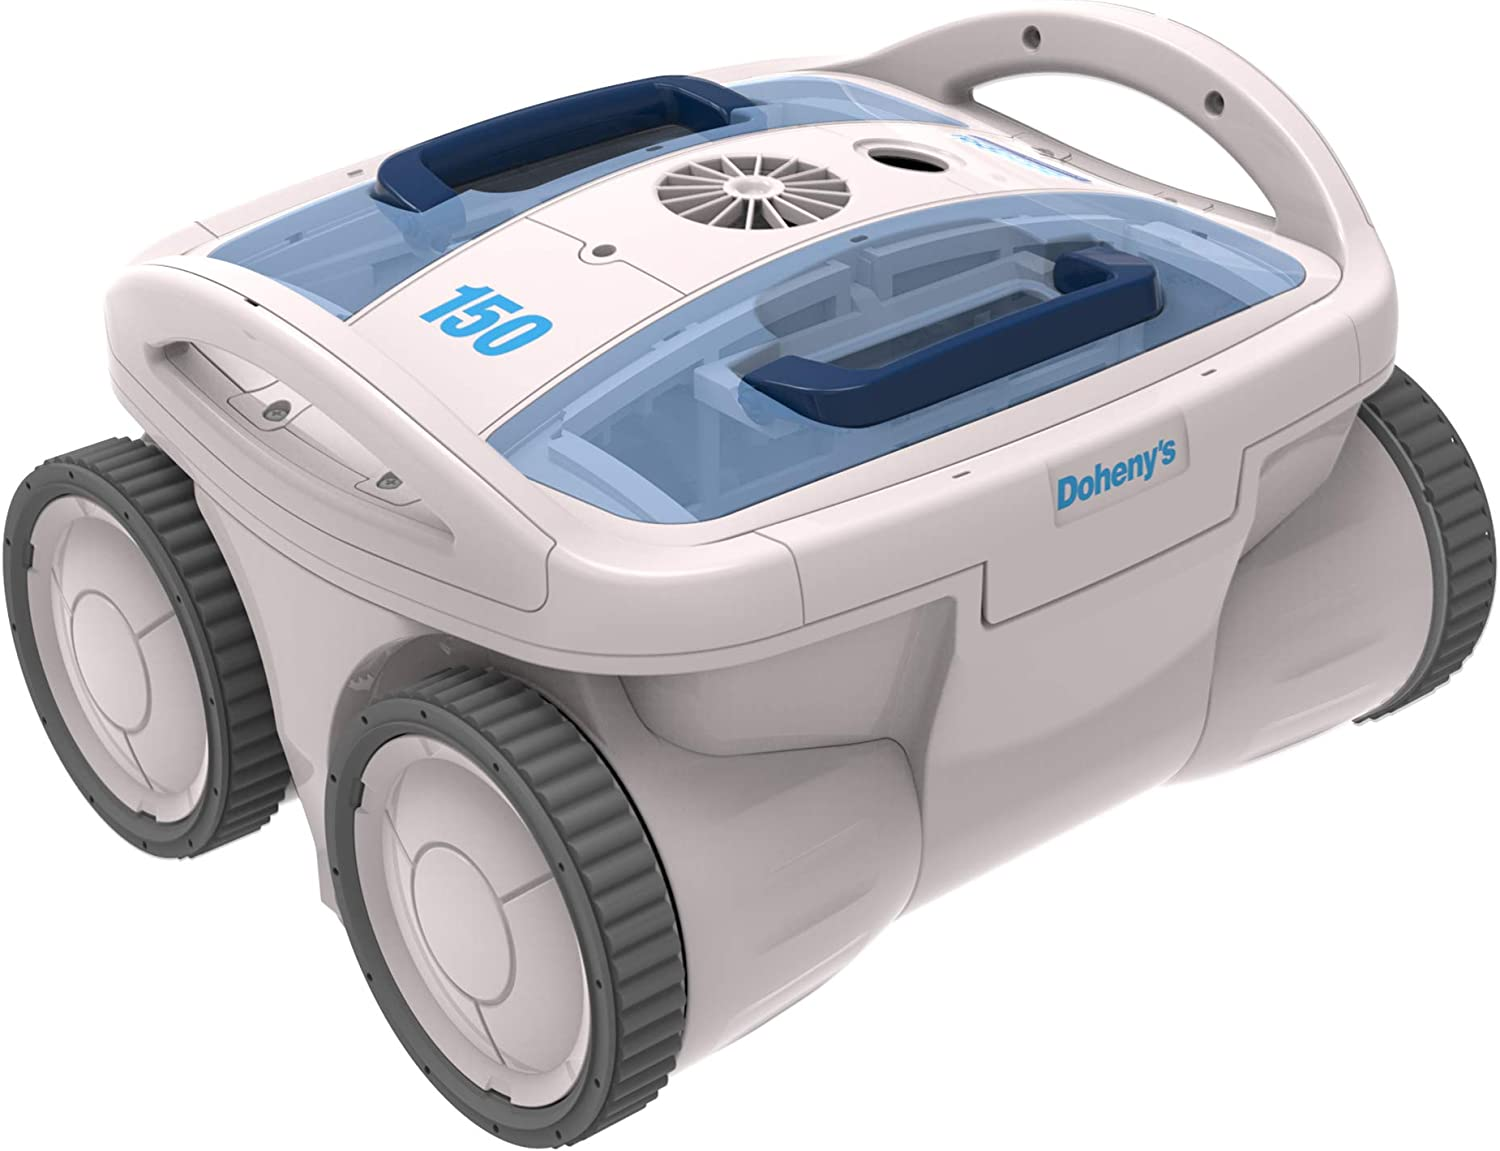 Doheny's Robotic Pool Cleaners